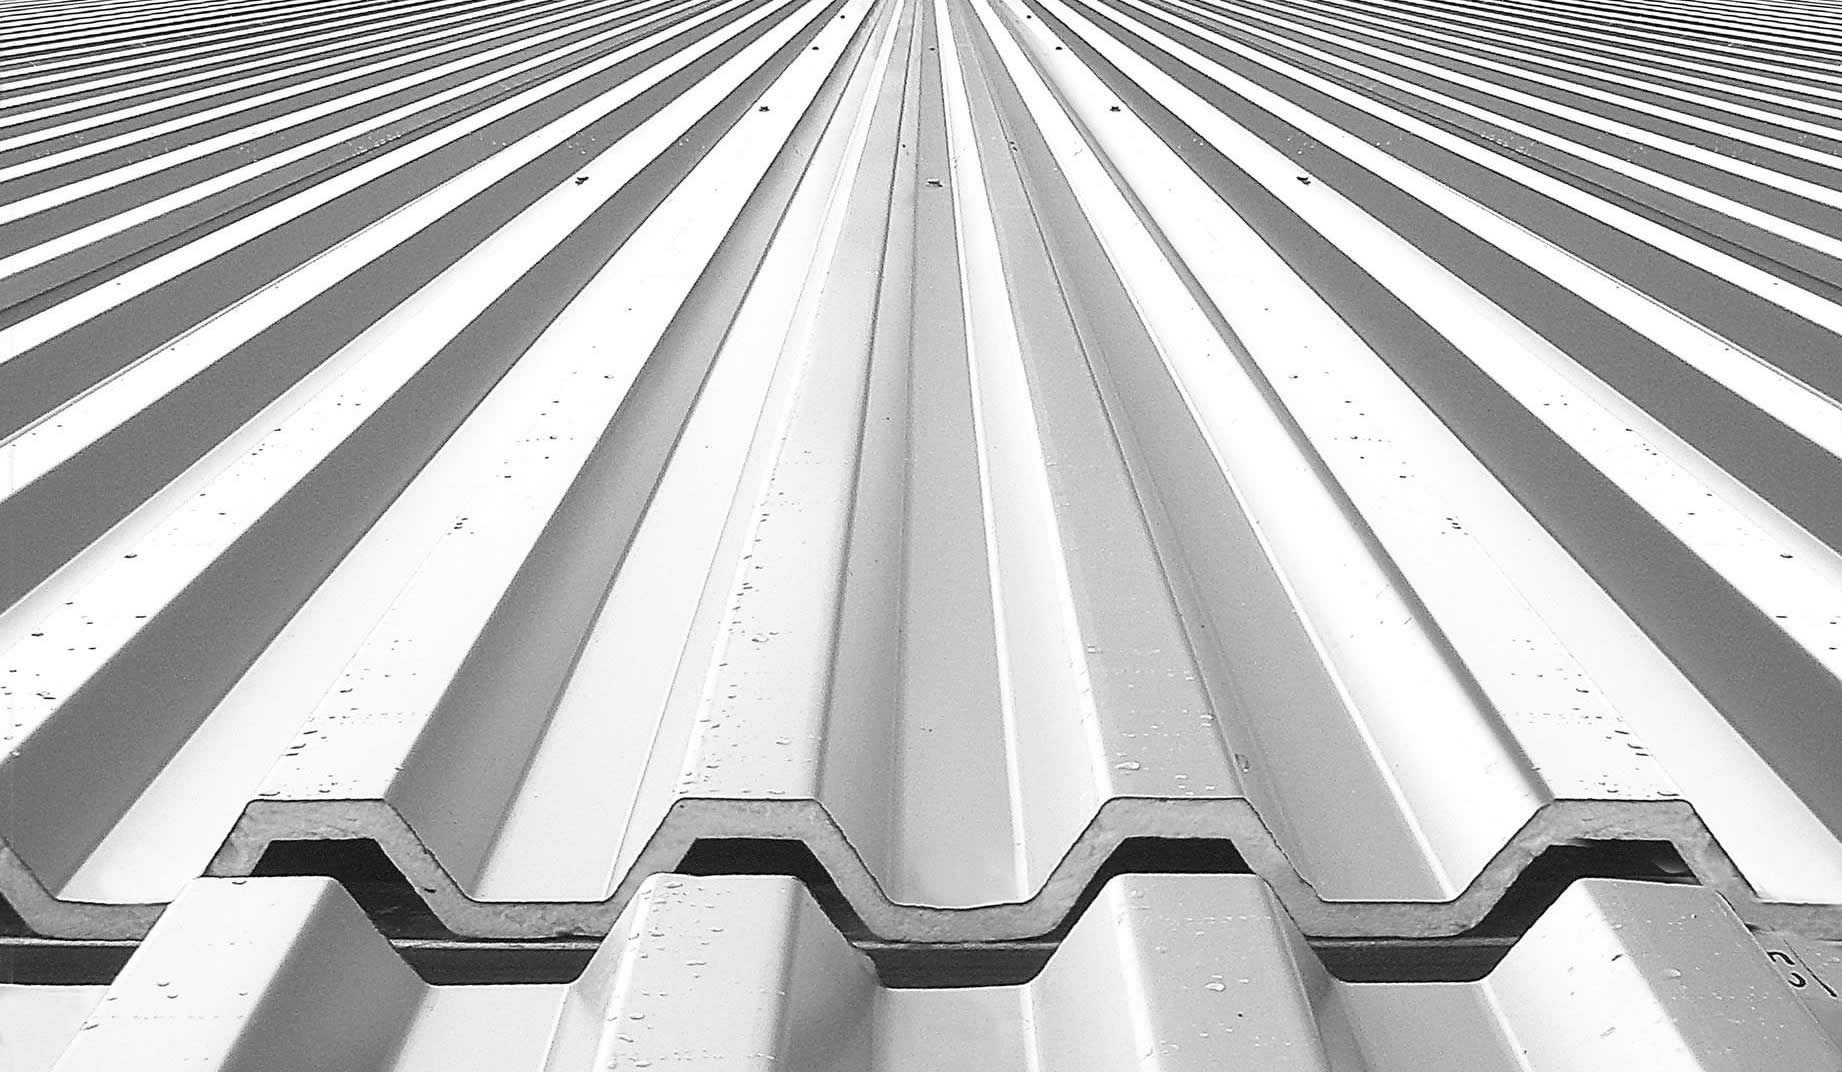 Construction Sheet Metal : Sheet metal roofing kss thailand